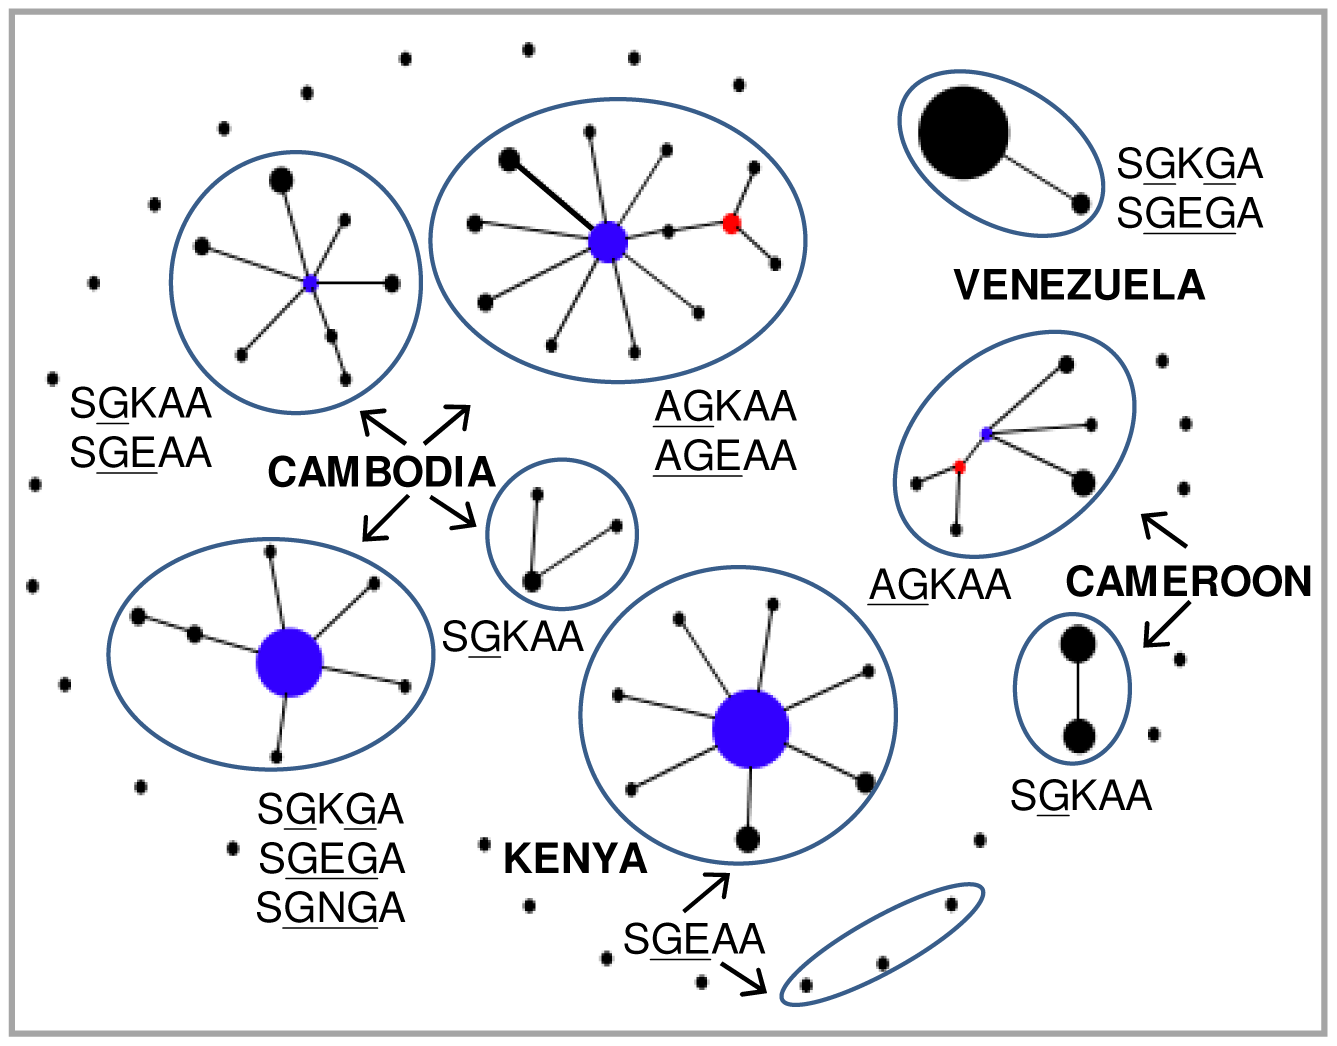 Genetic relationships among the <i>dhps</i> alleles of Southeast Asia (Cambodia), Africa (Kenya and Cameroon) and South America (Venezuela).